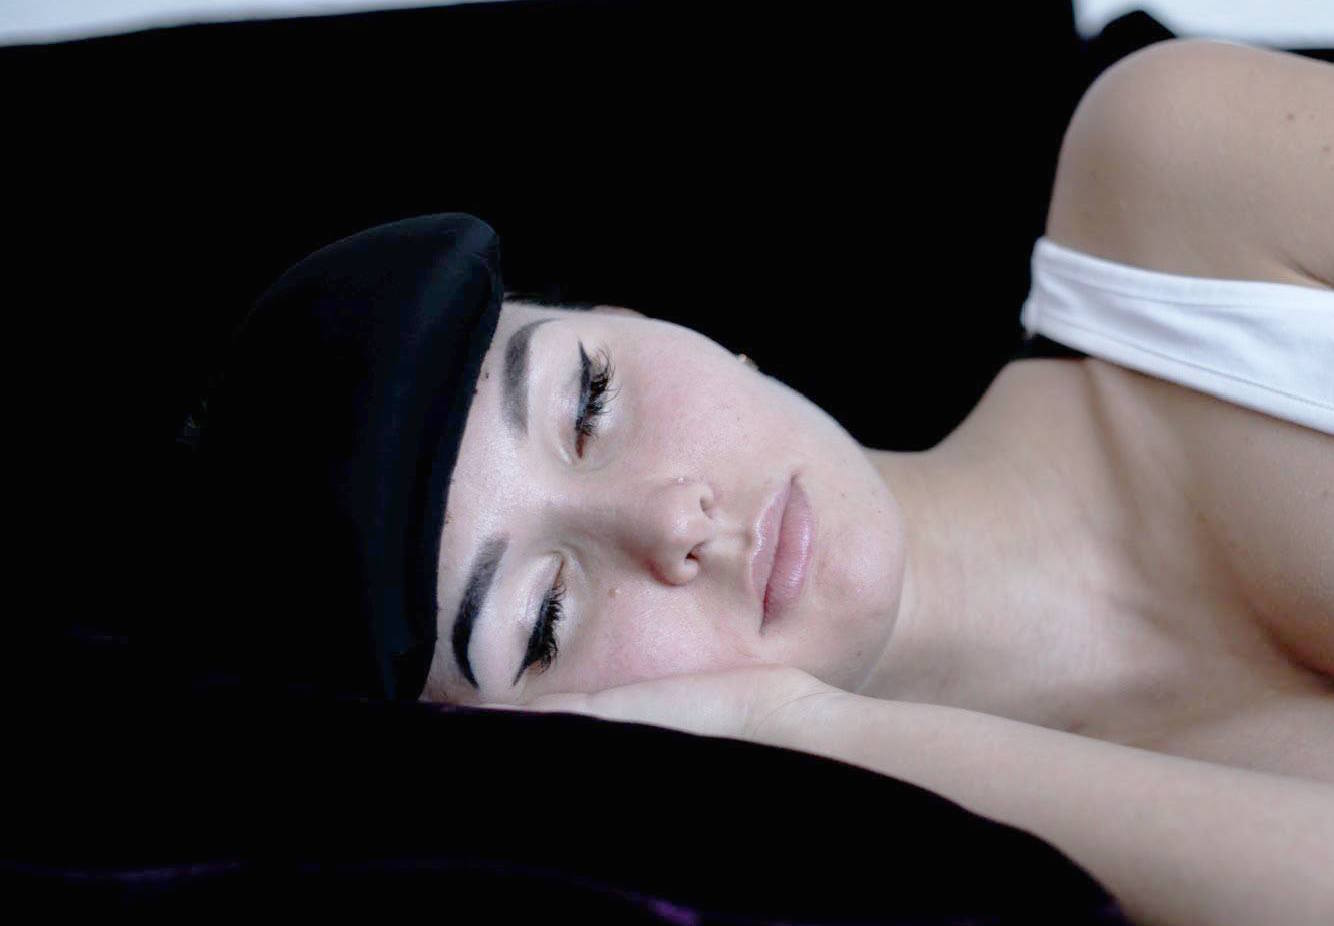 Today in crazy cool: You can use this headband to control your dreams